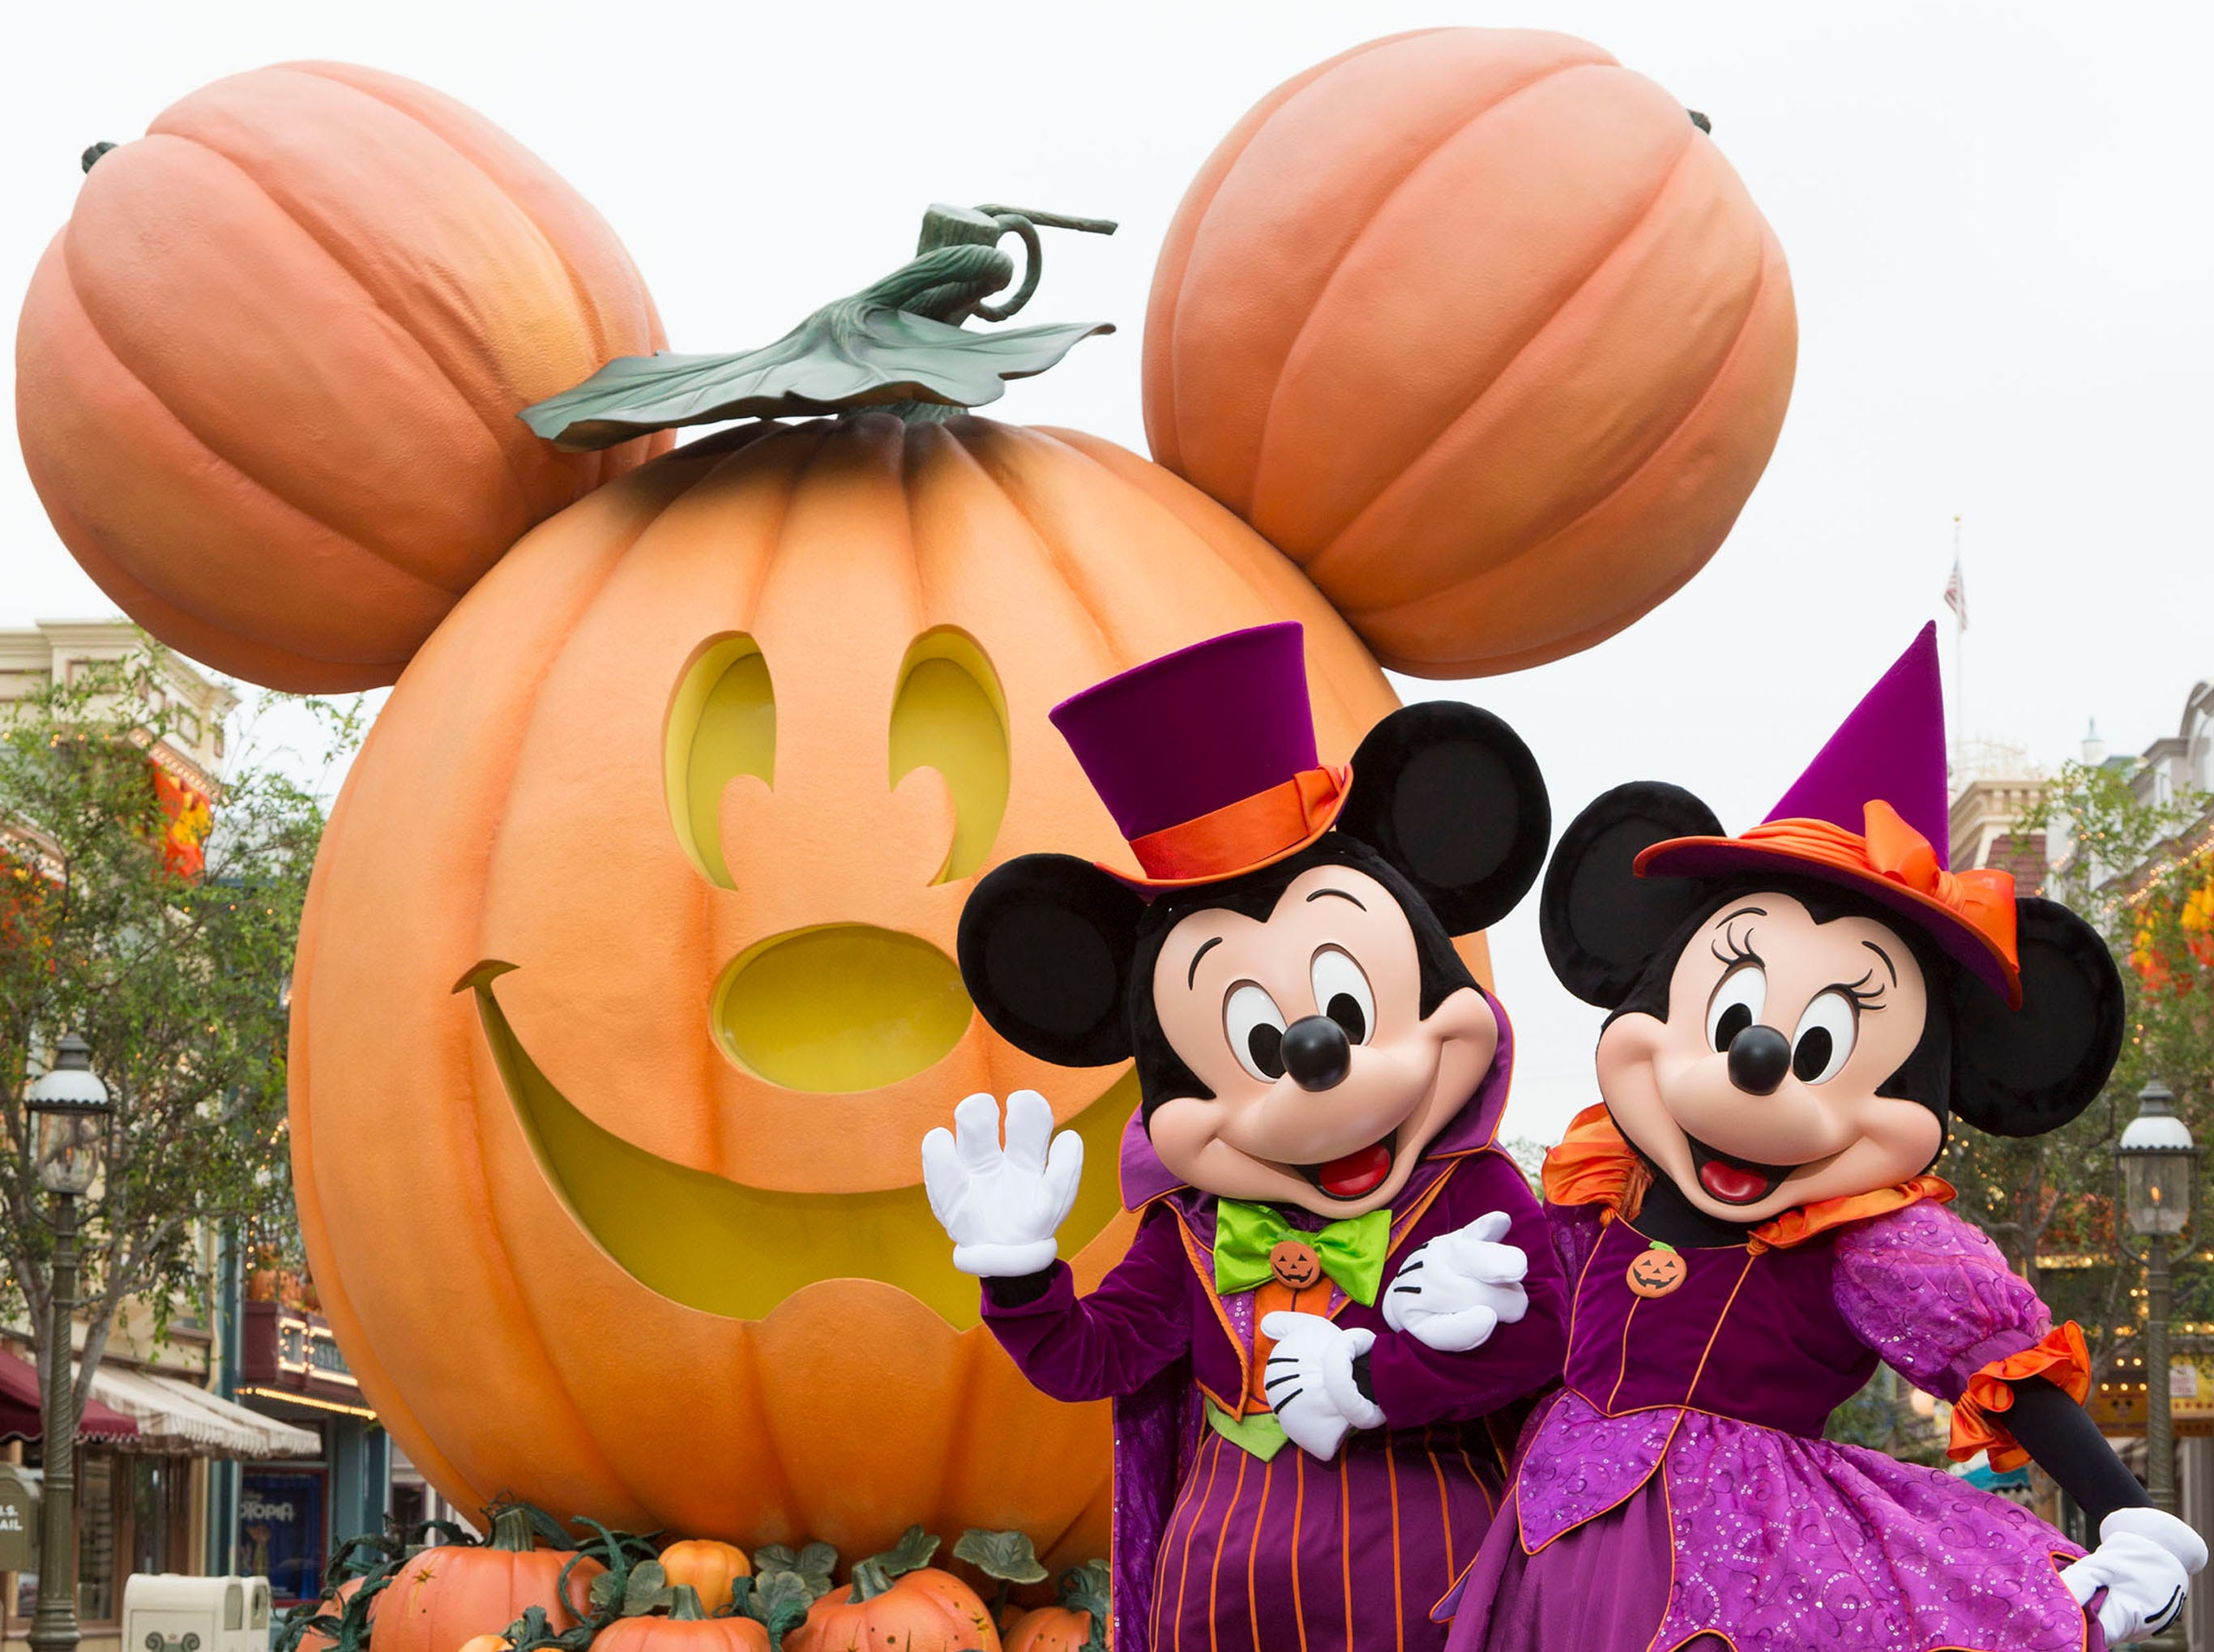 During Halloween Time at the Disneyland Resort, guests will encounter beloved characters dressed in fun seasonal costumes, including Mickey Mouse and Minnie Mouse.